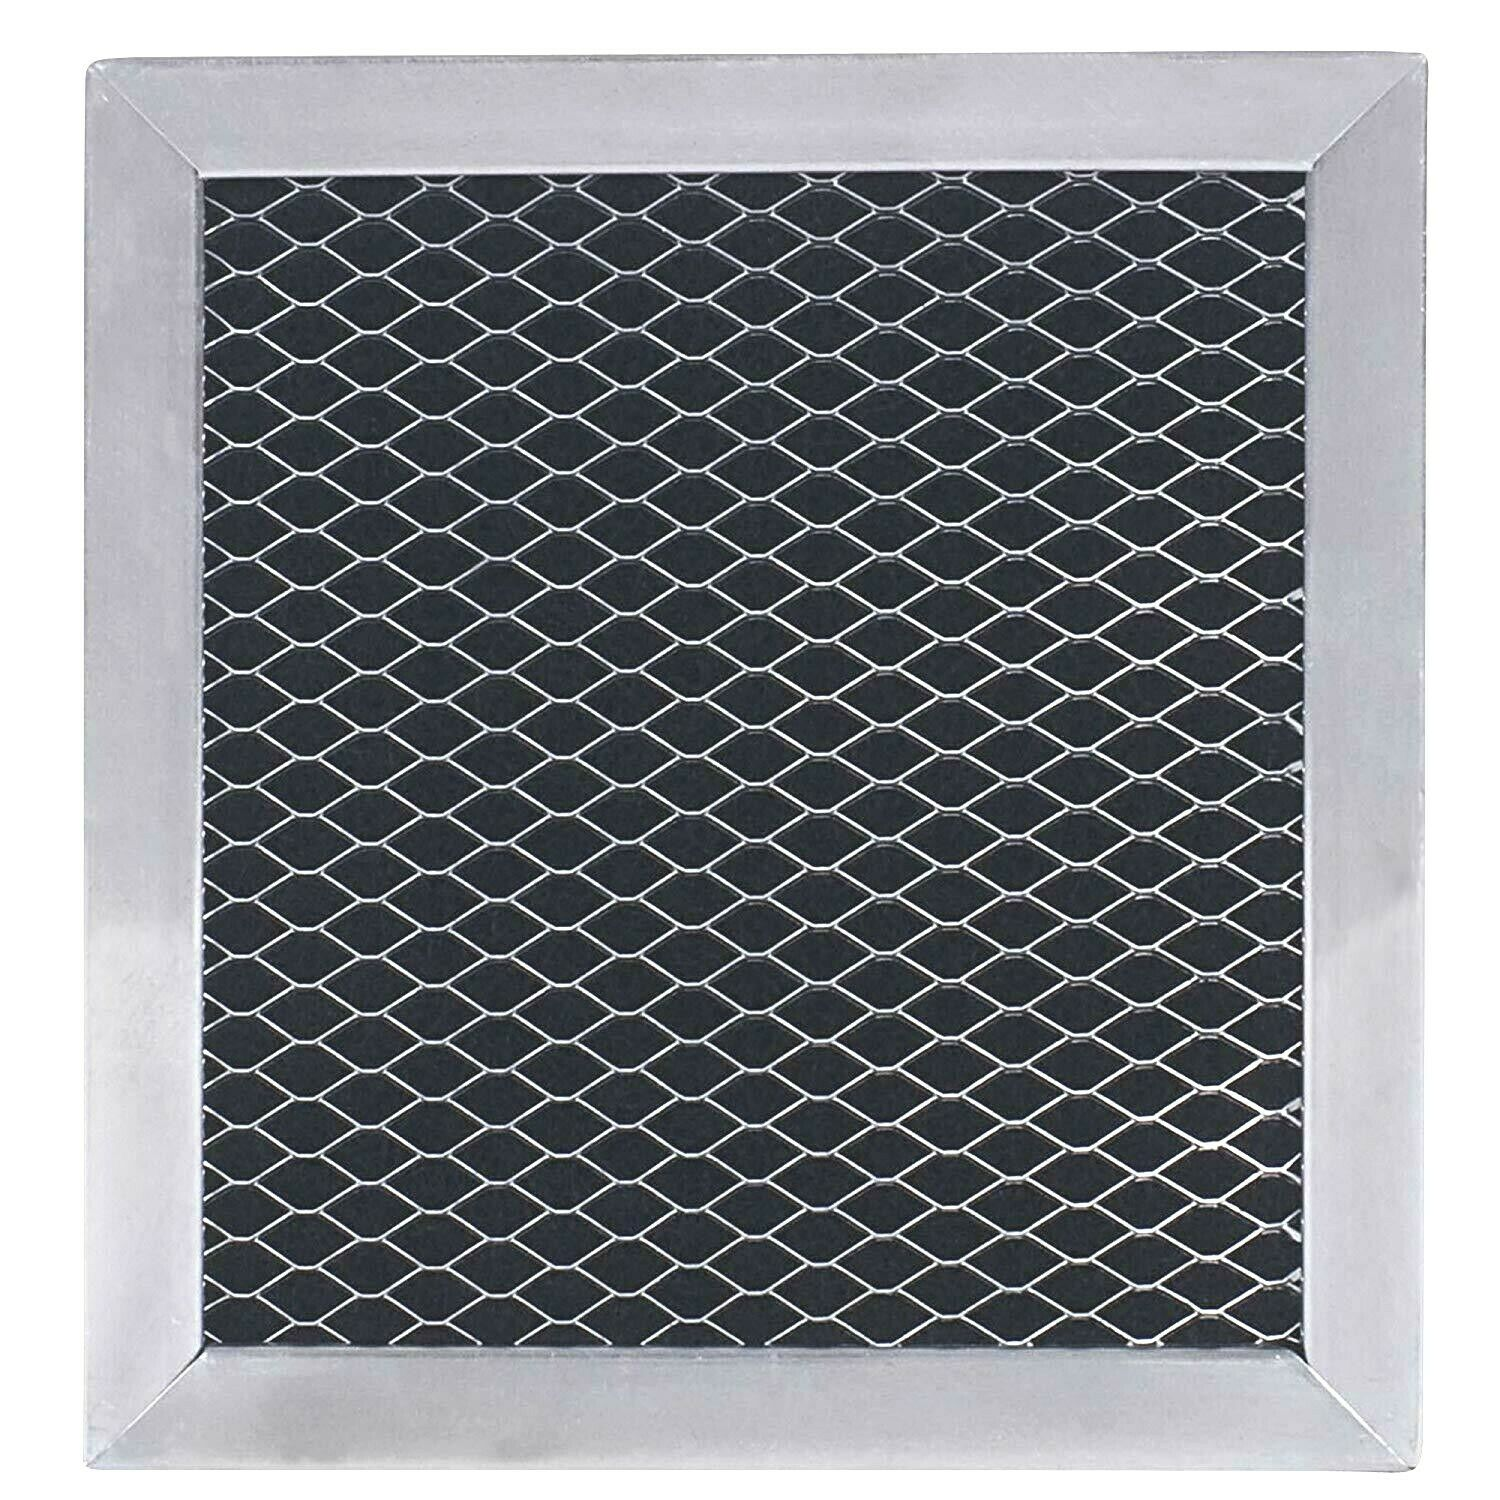 Microwave Charcoal Filter for Whirlpool 8206230A AH1871363 E